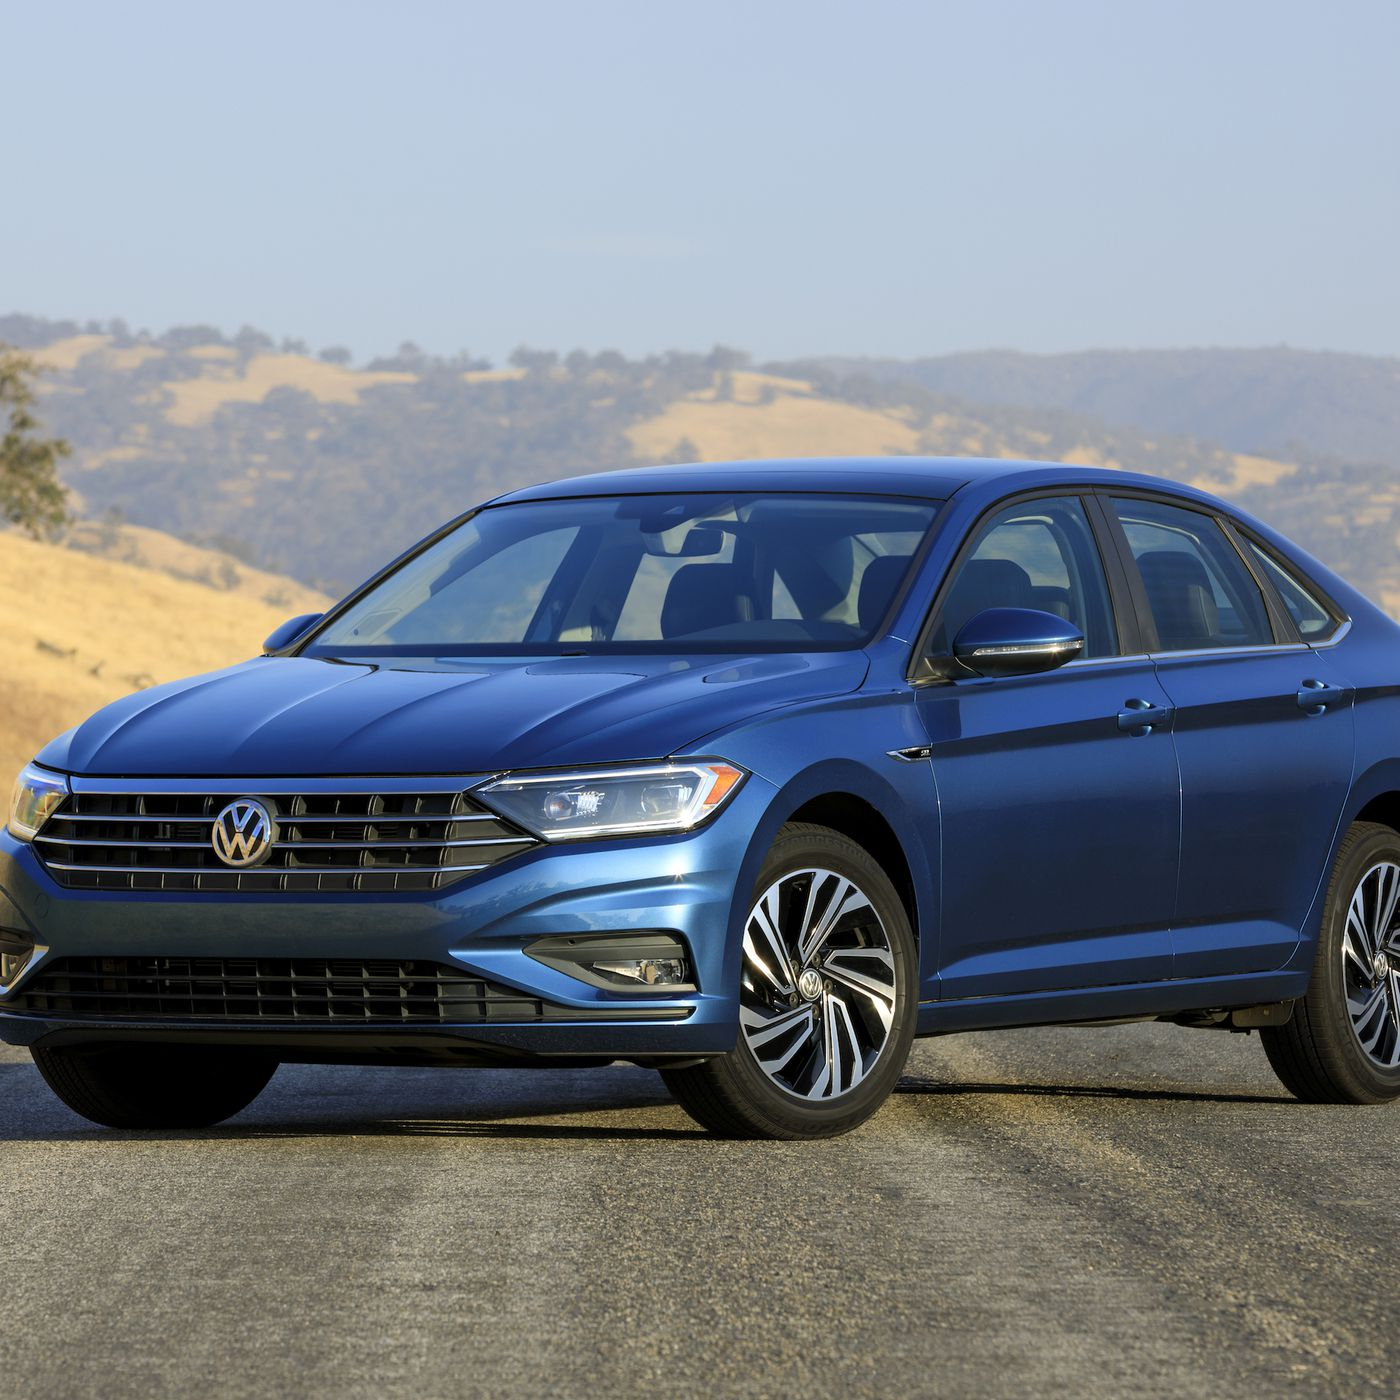 The 2019 Vw Jetta Is An Accessible Car